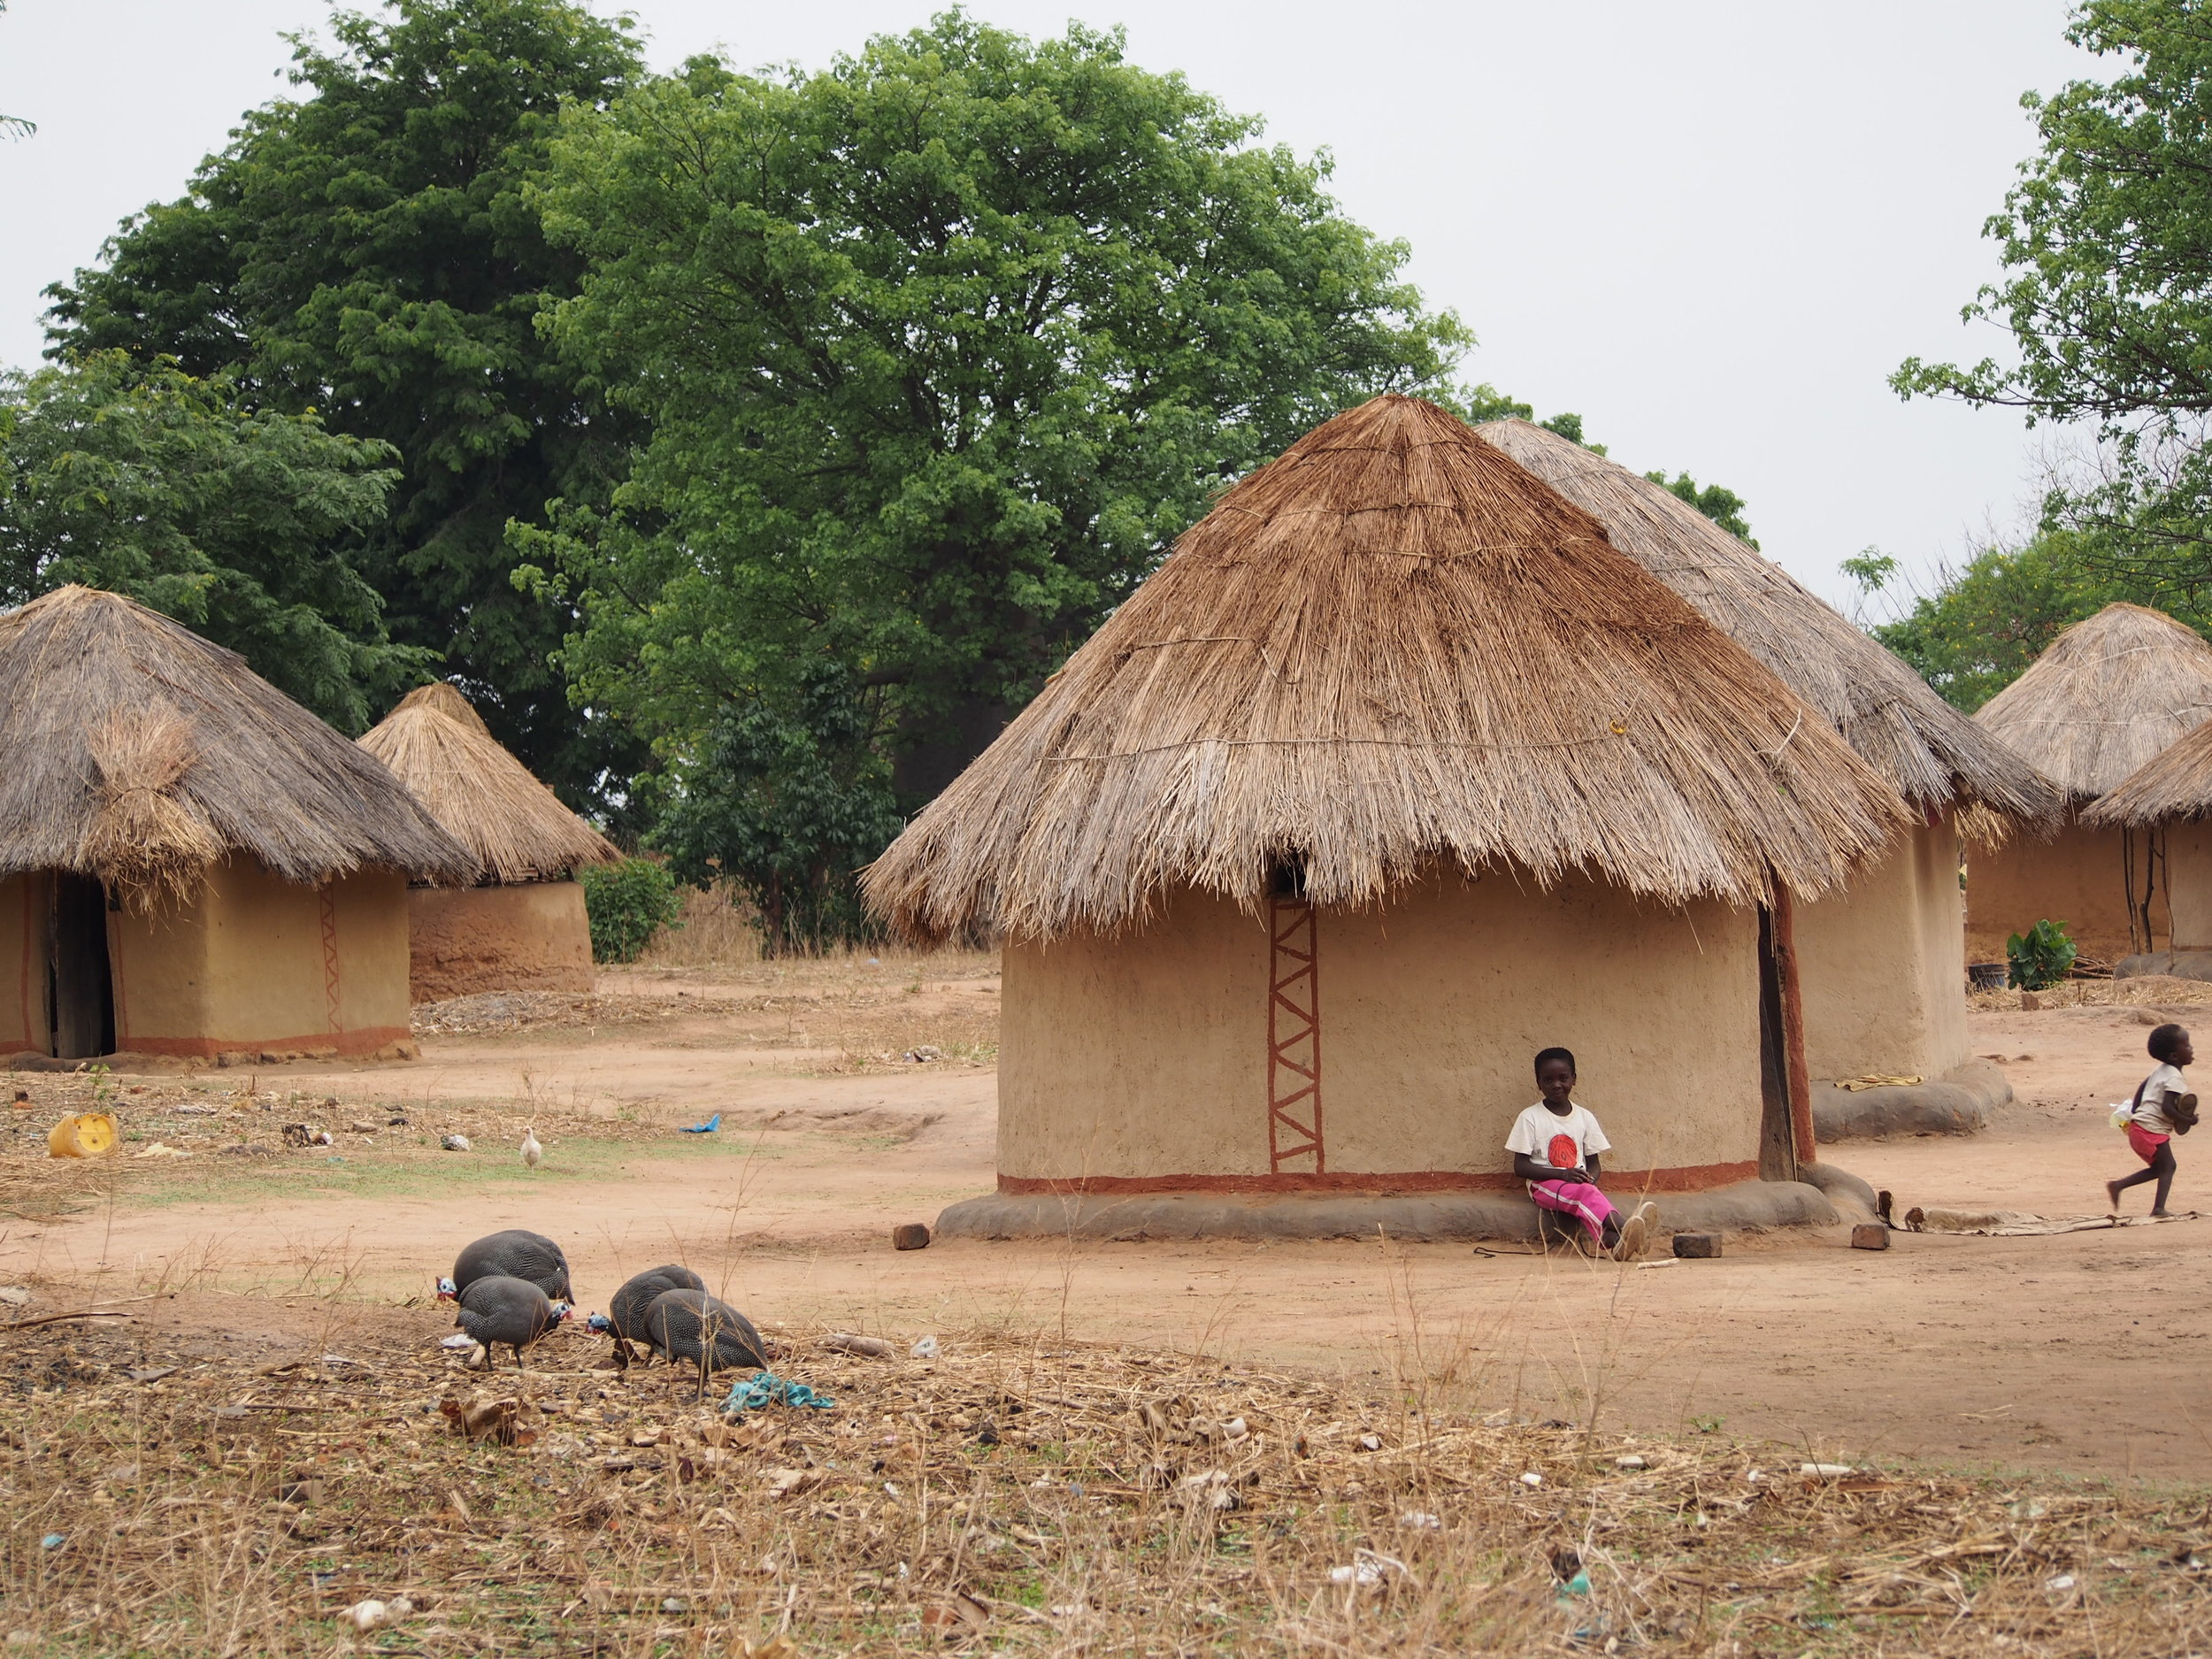 Manchinchi village, Kalindawalo Chiefdom, in the Luangwa Valley, Eastern Zambia